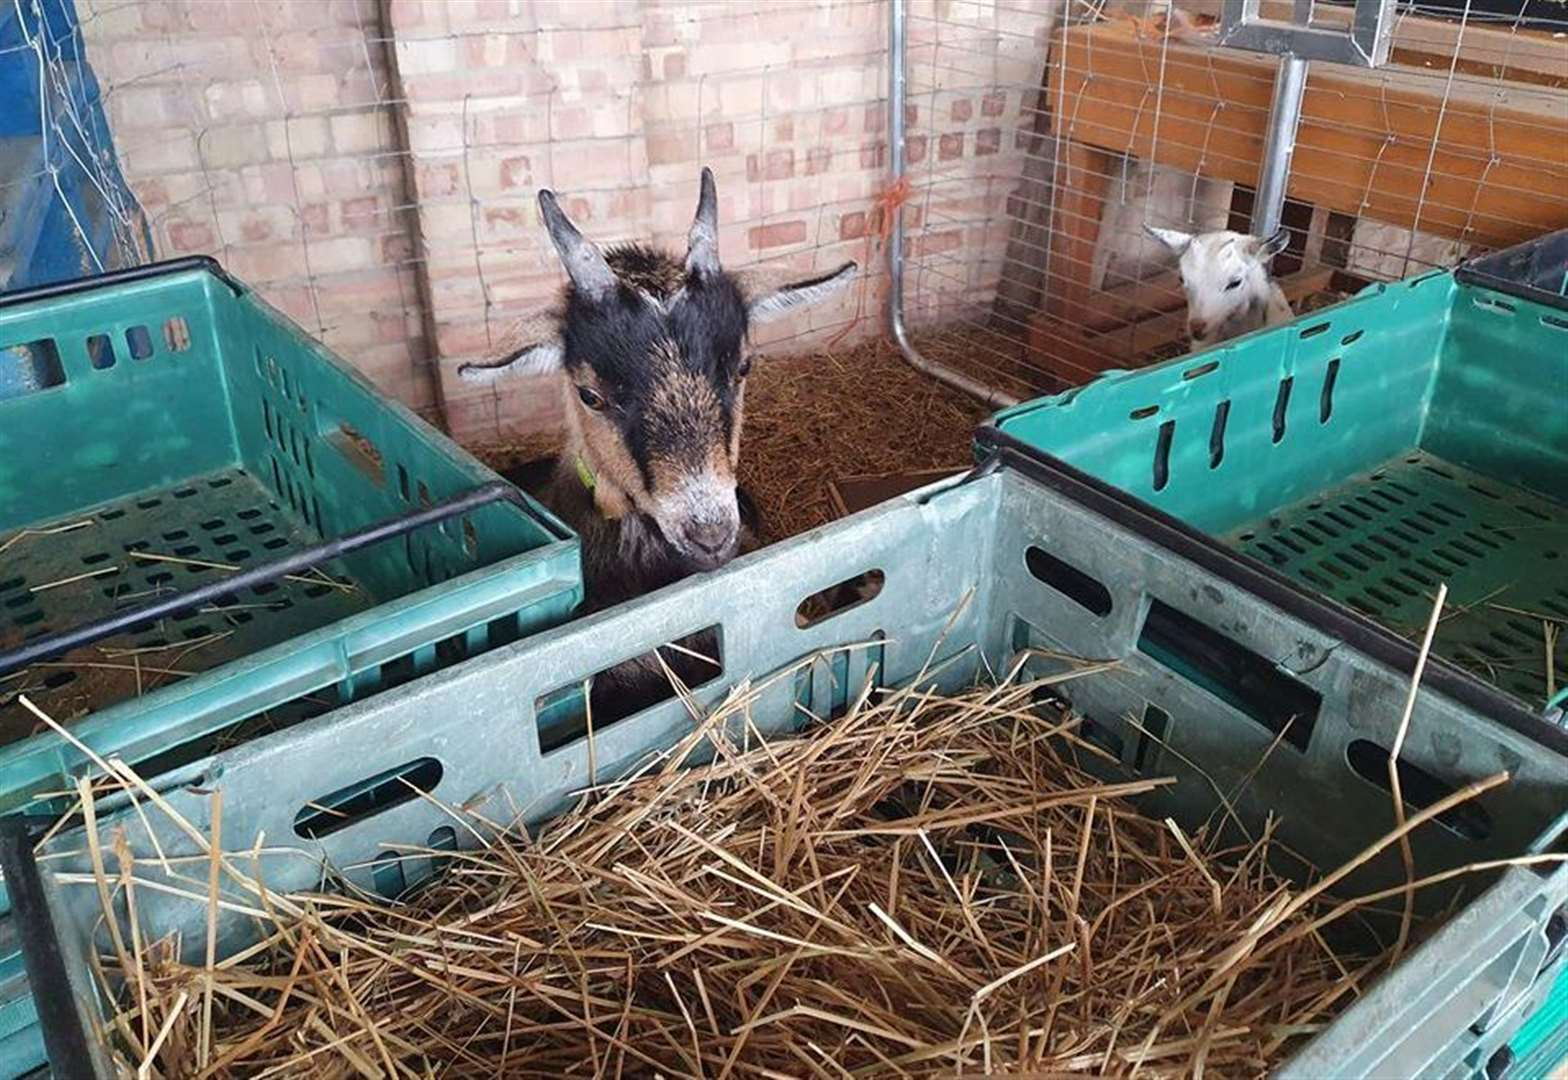 Pygmy goats stolen from farm shop